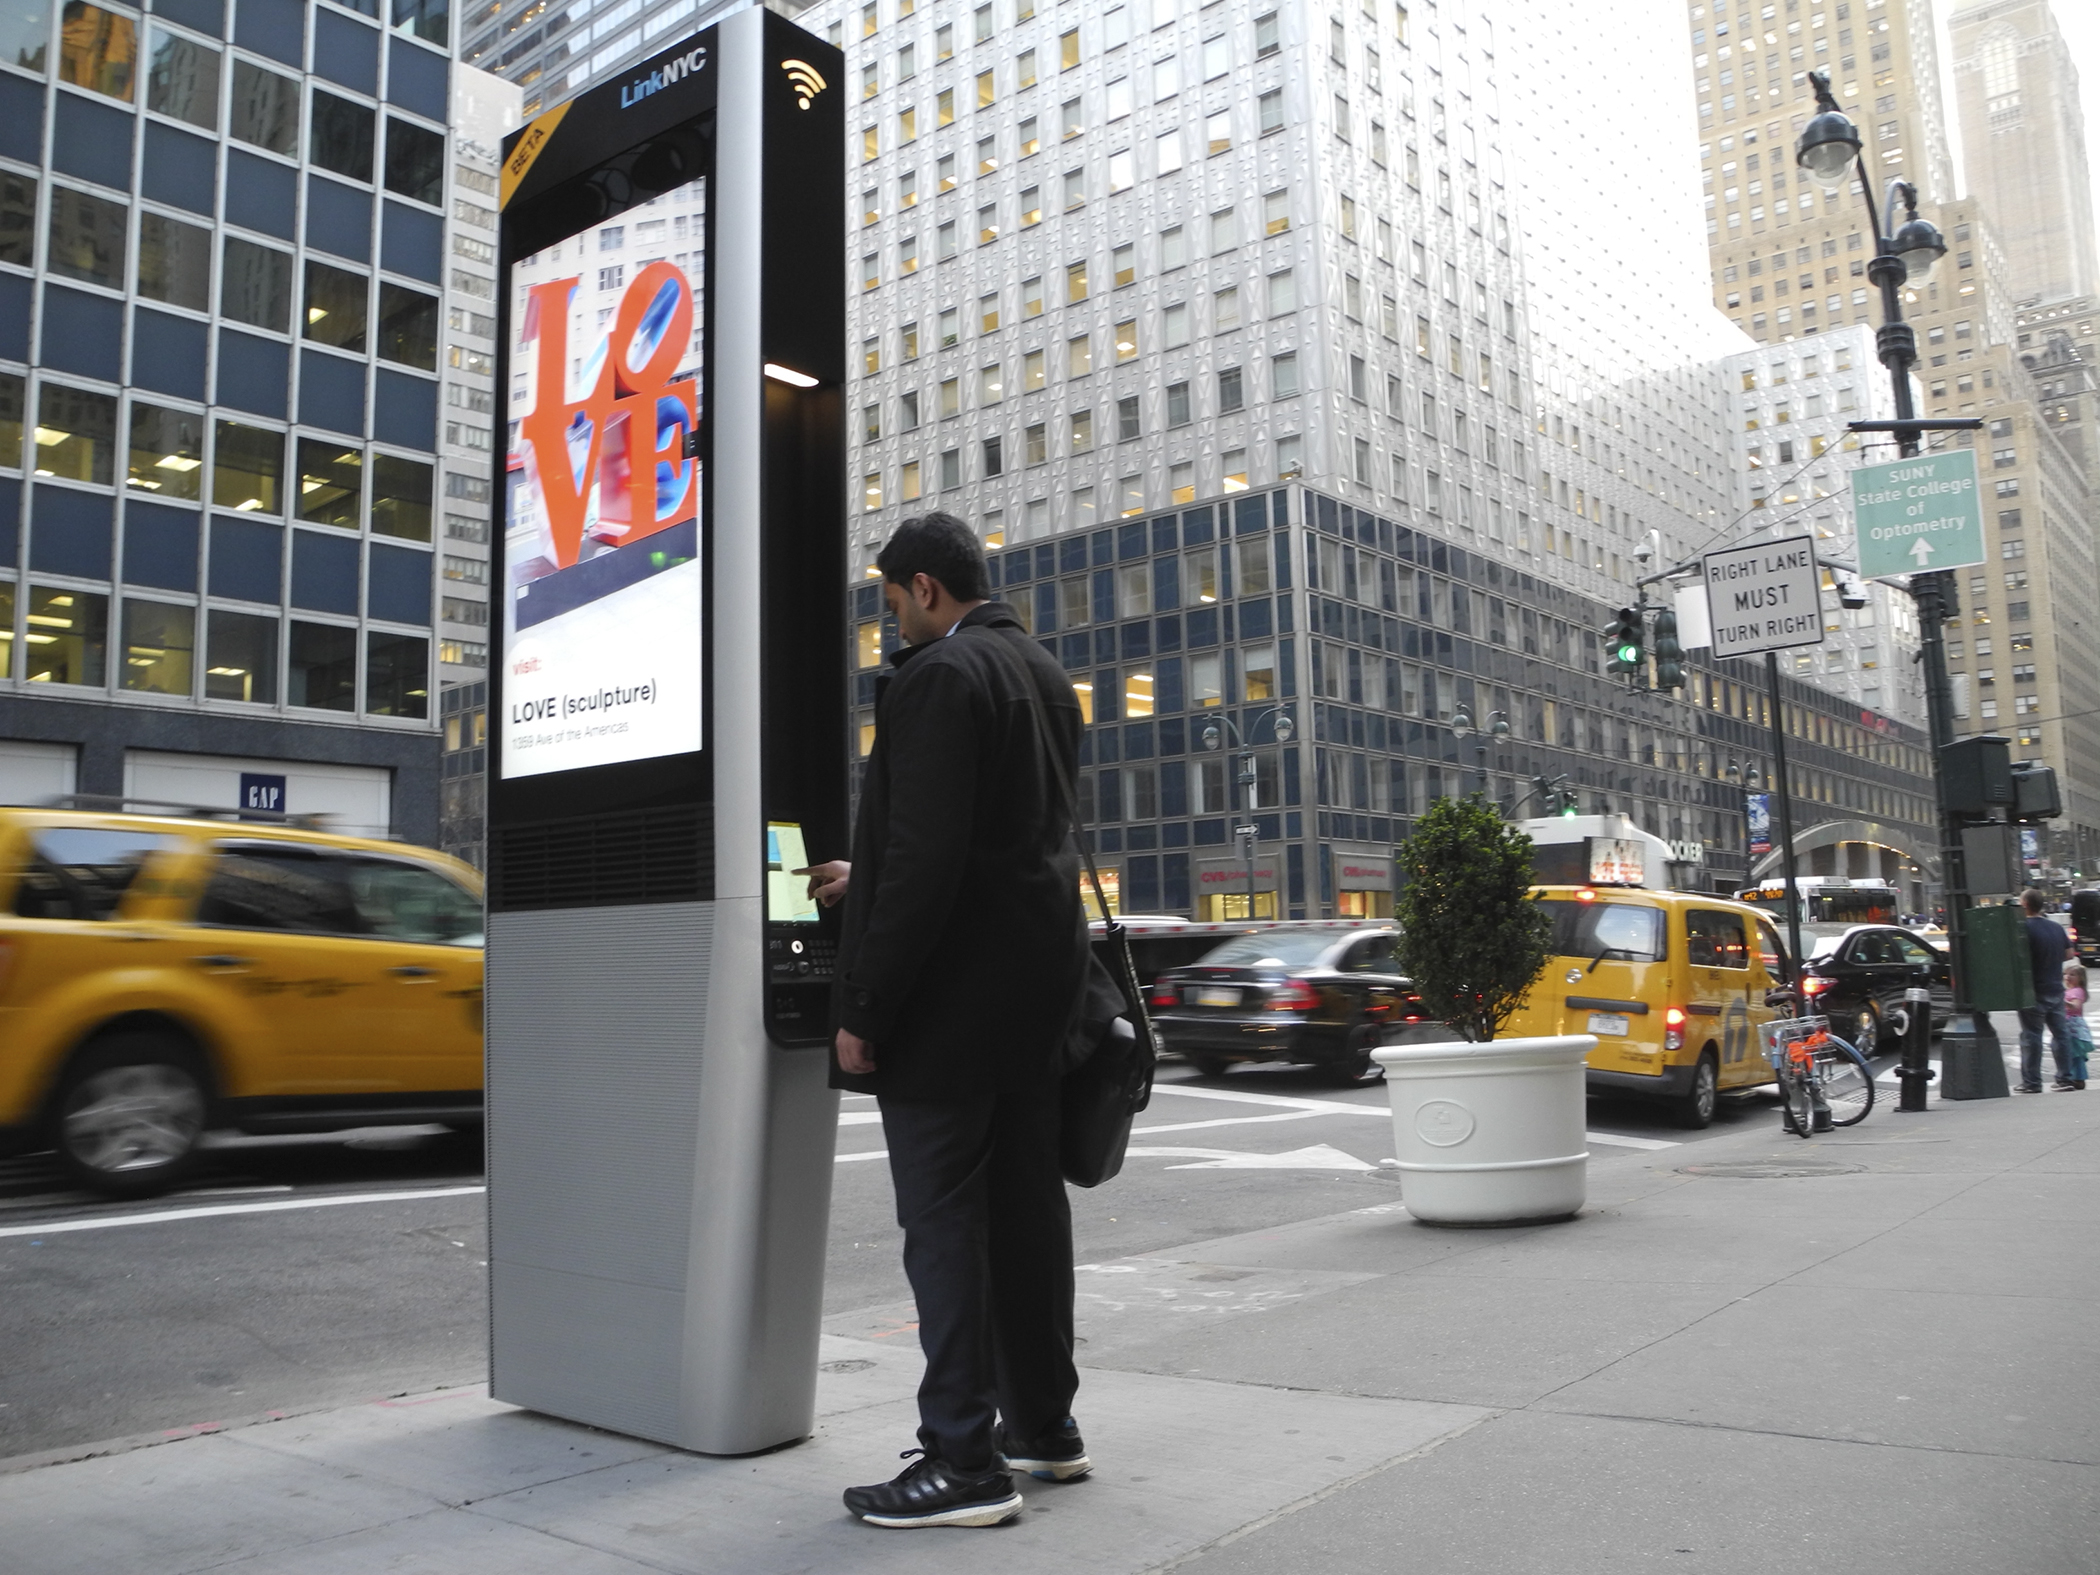 A man uses a LinkNYC station in New York, USA, 23 March 2016. These stations offer free Wi-Fi in the city.